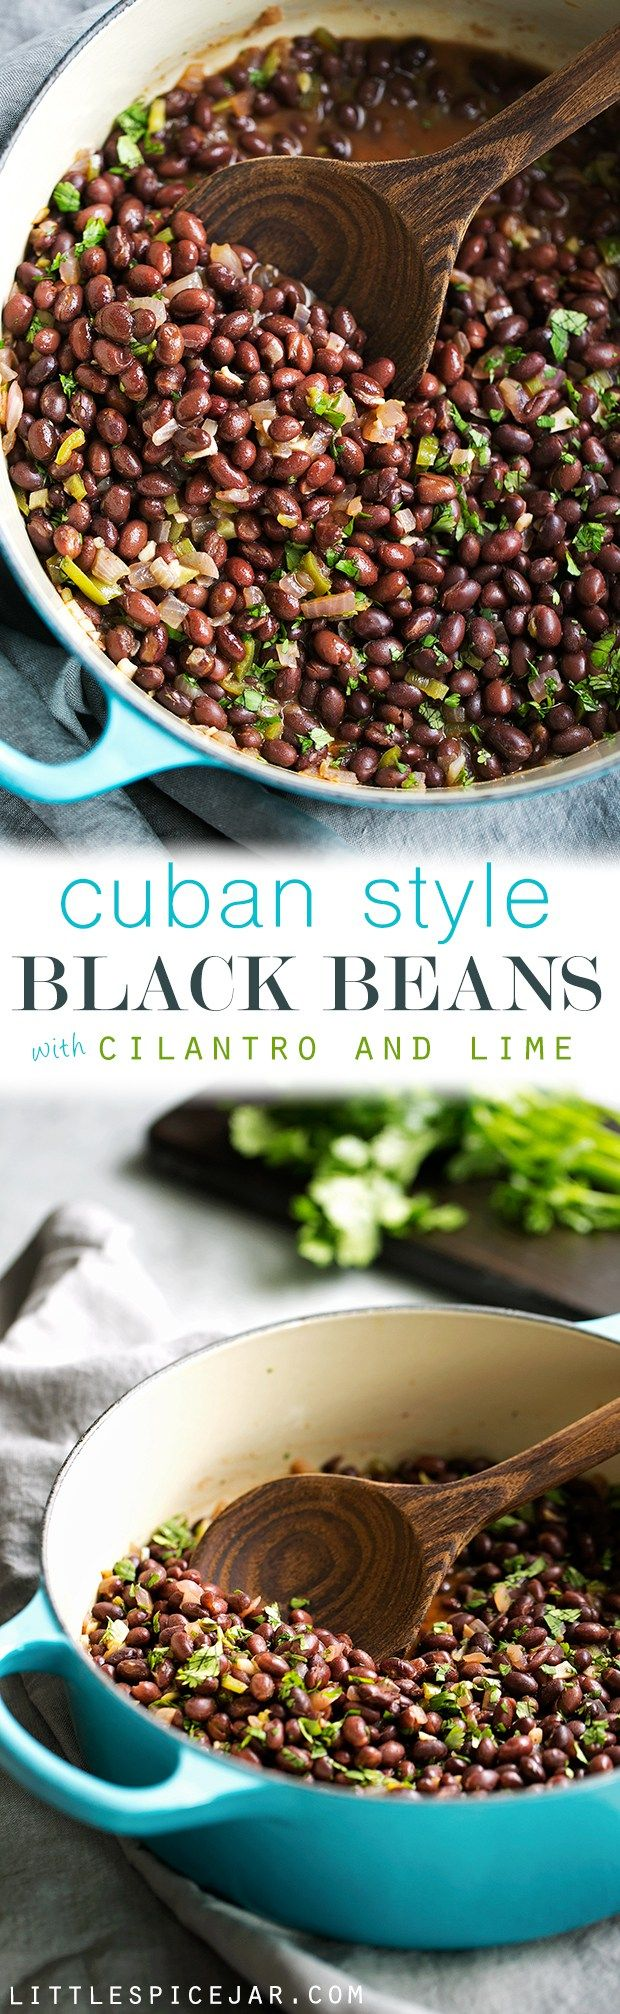 Cuban Black Beans with Cilantro and Lime - These are the perfect accompaniment to white rice and are completely vegan! Slow simmered black beans flavored with cilantro and lime! #cubanblackbeans #frijolesnegros #blackbeans | Littlespicejar.com                                                                                                                                                                                 Más